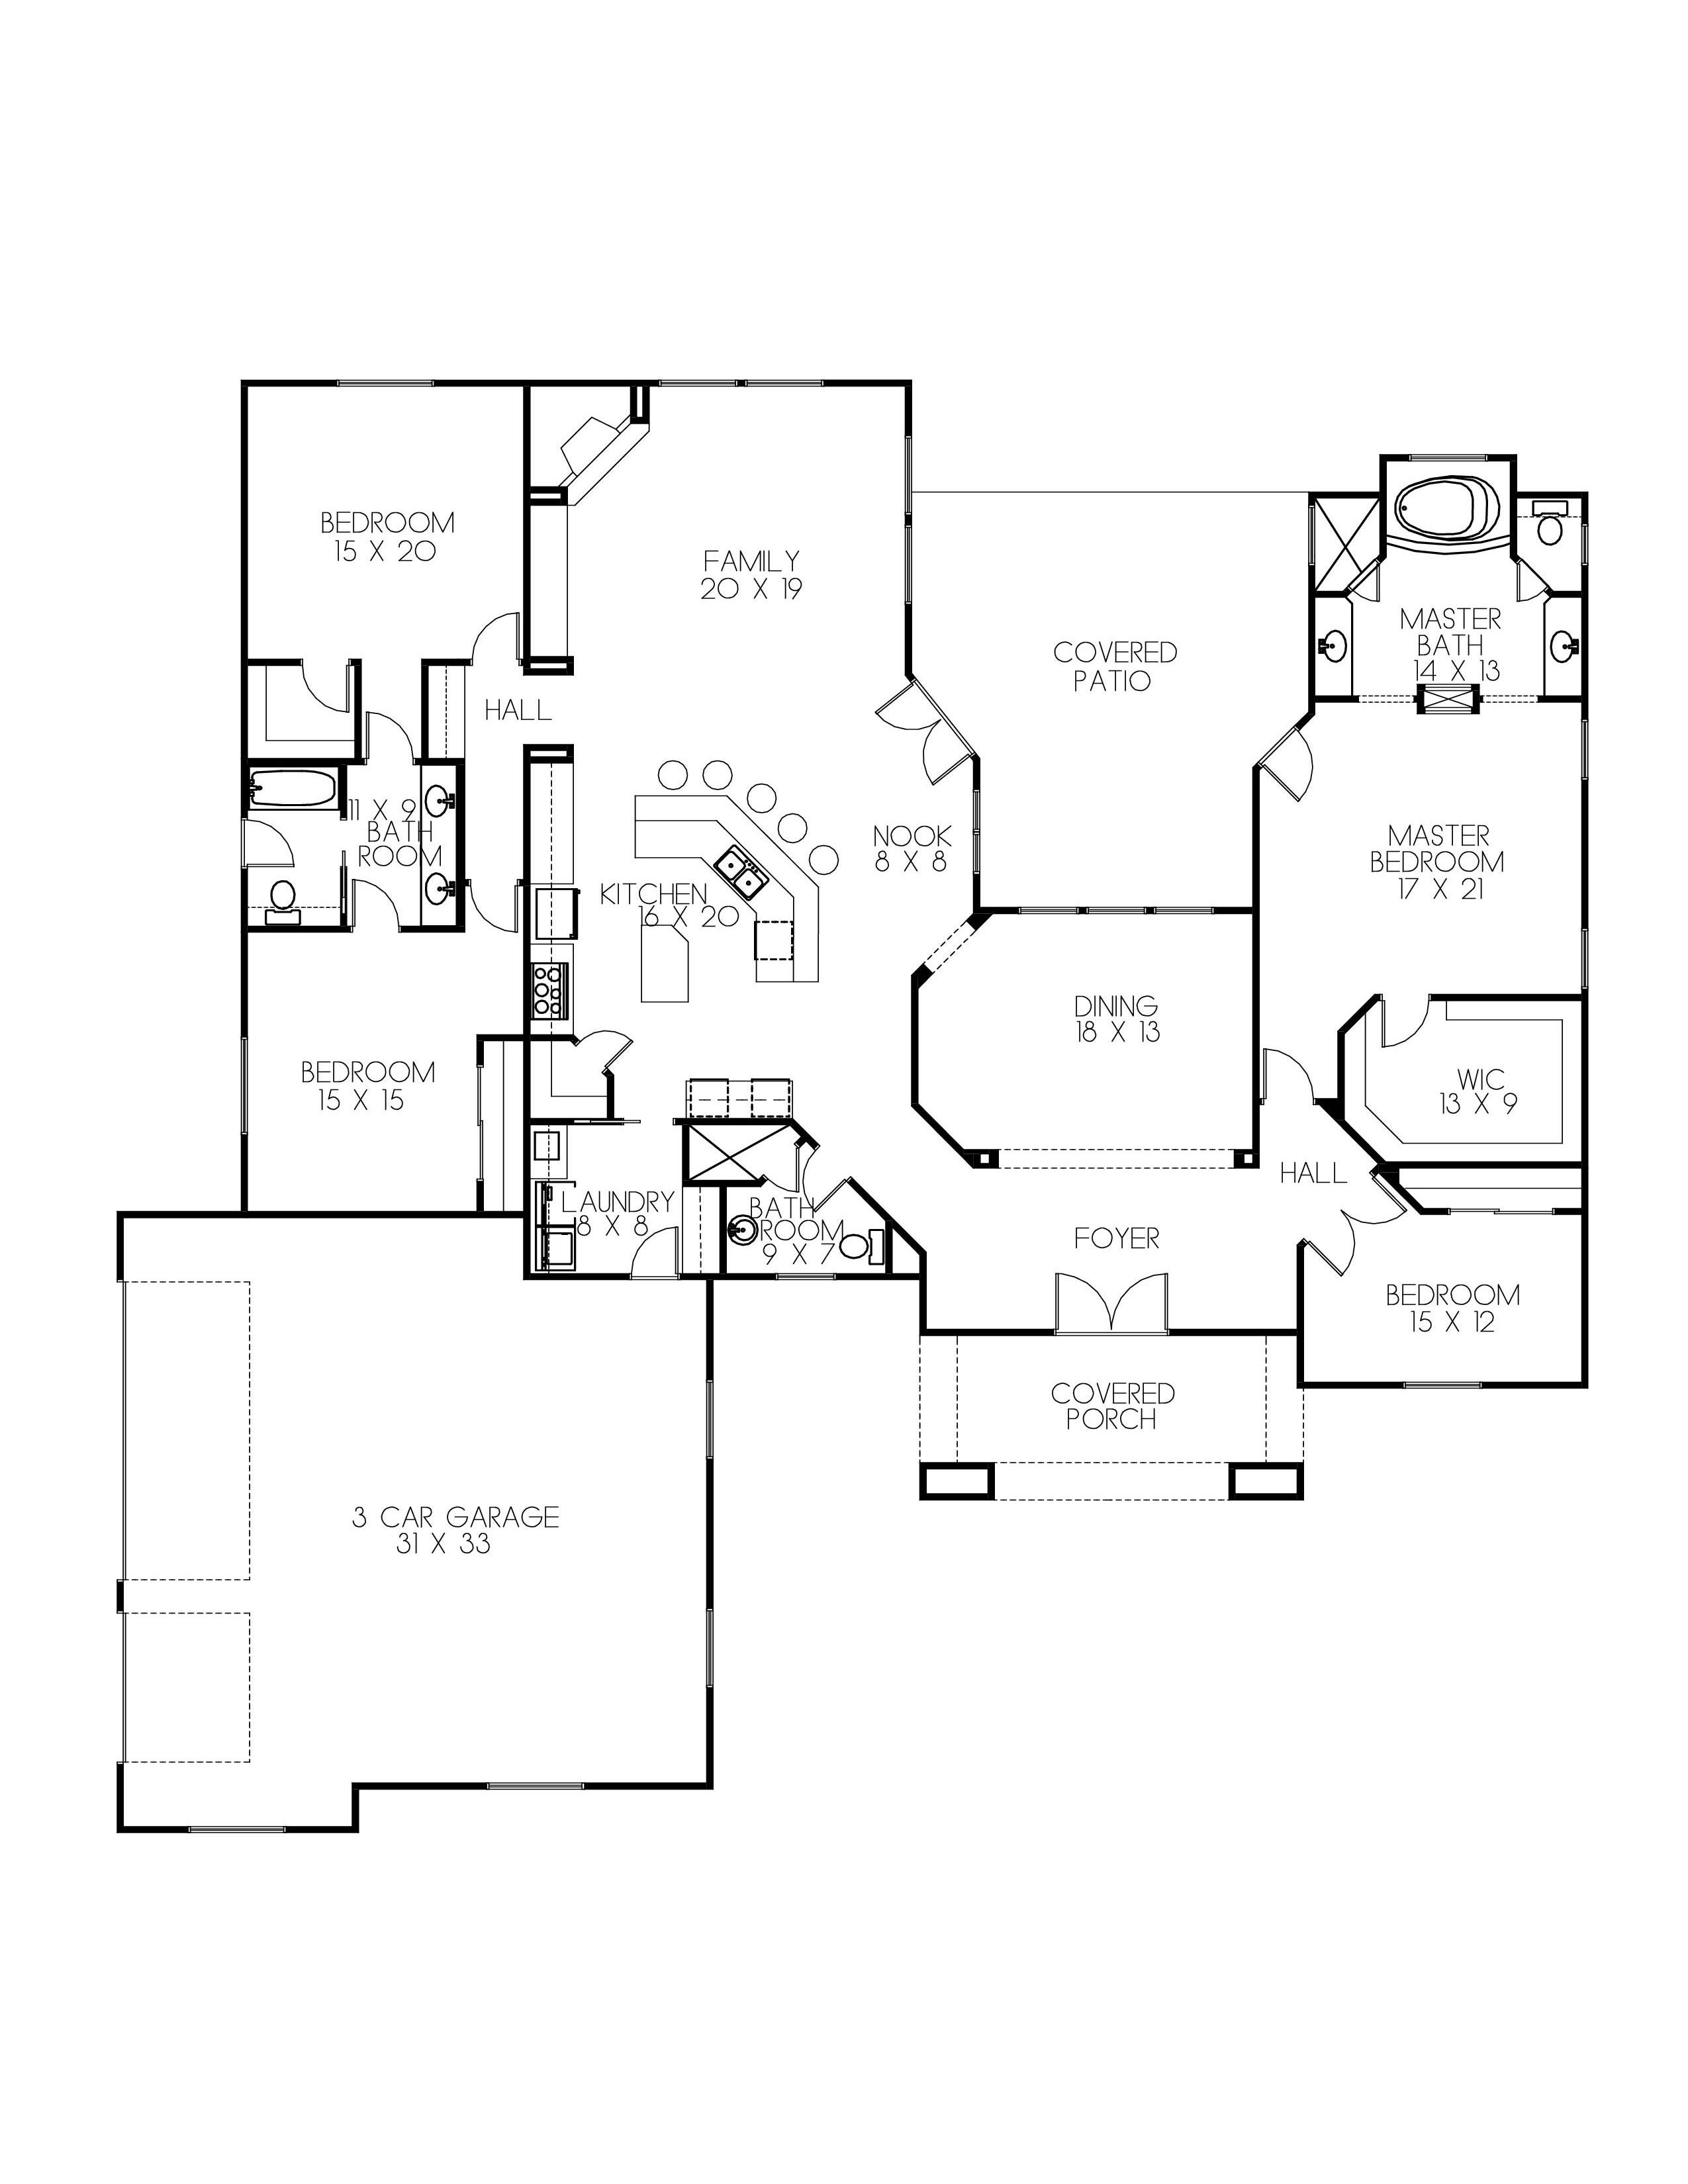 P43 2982 for Ready to build house plans